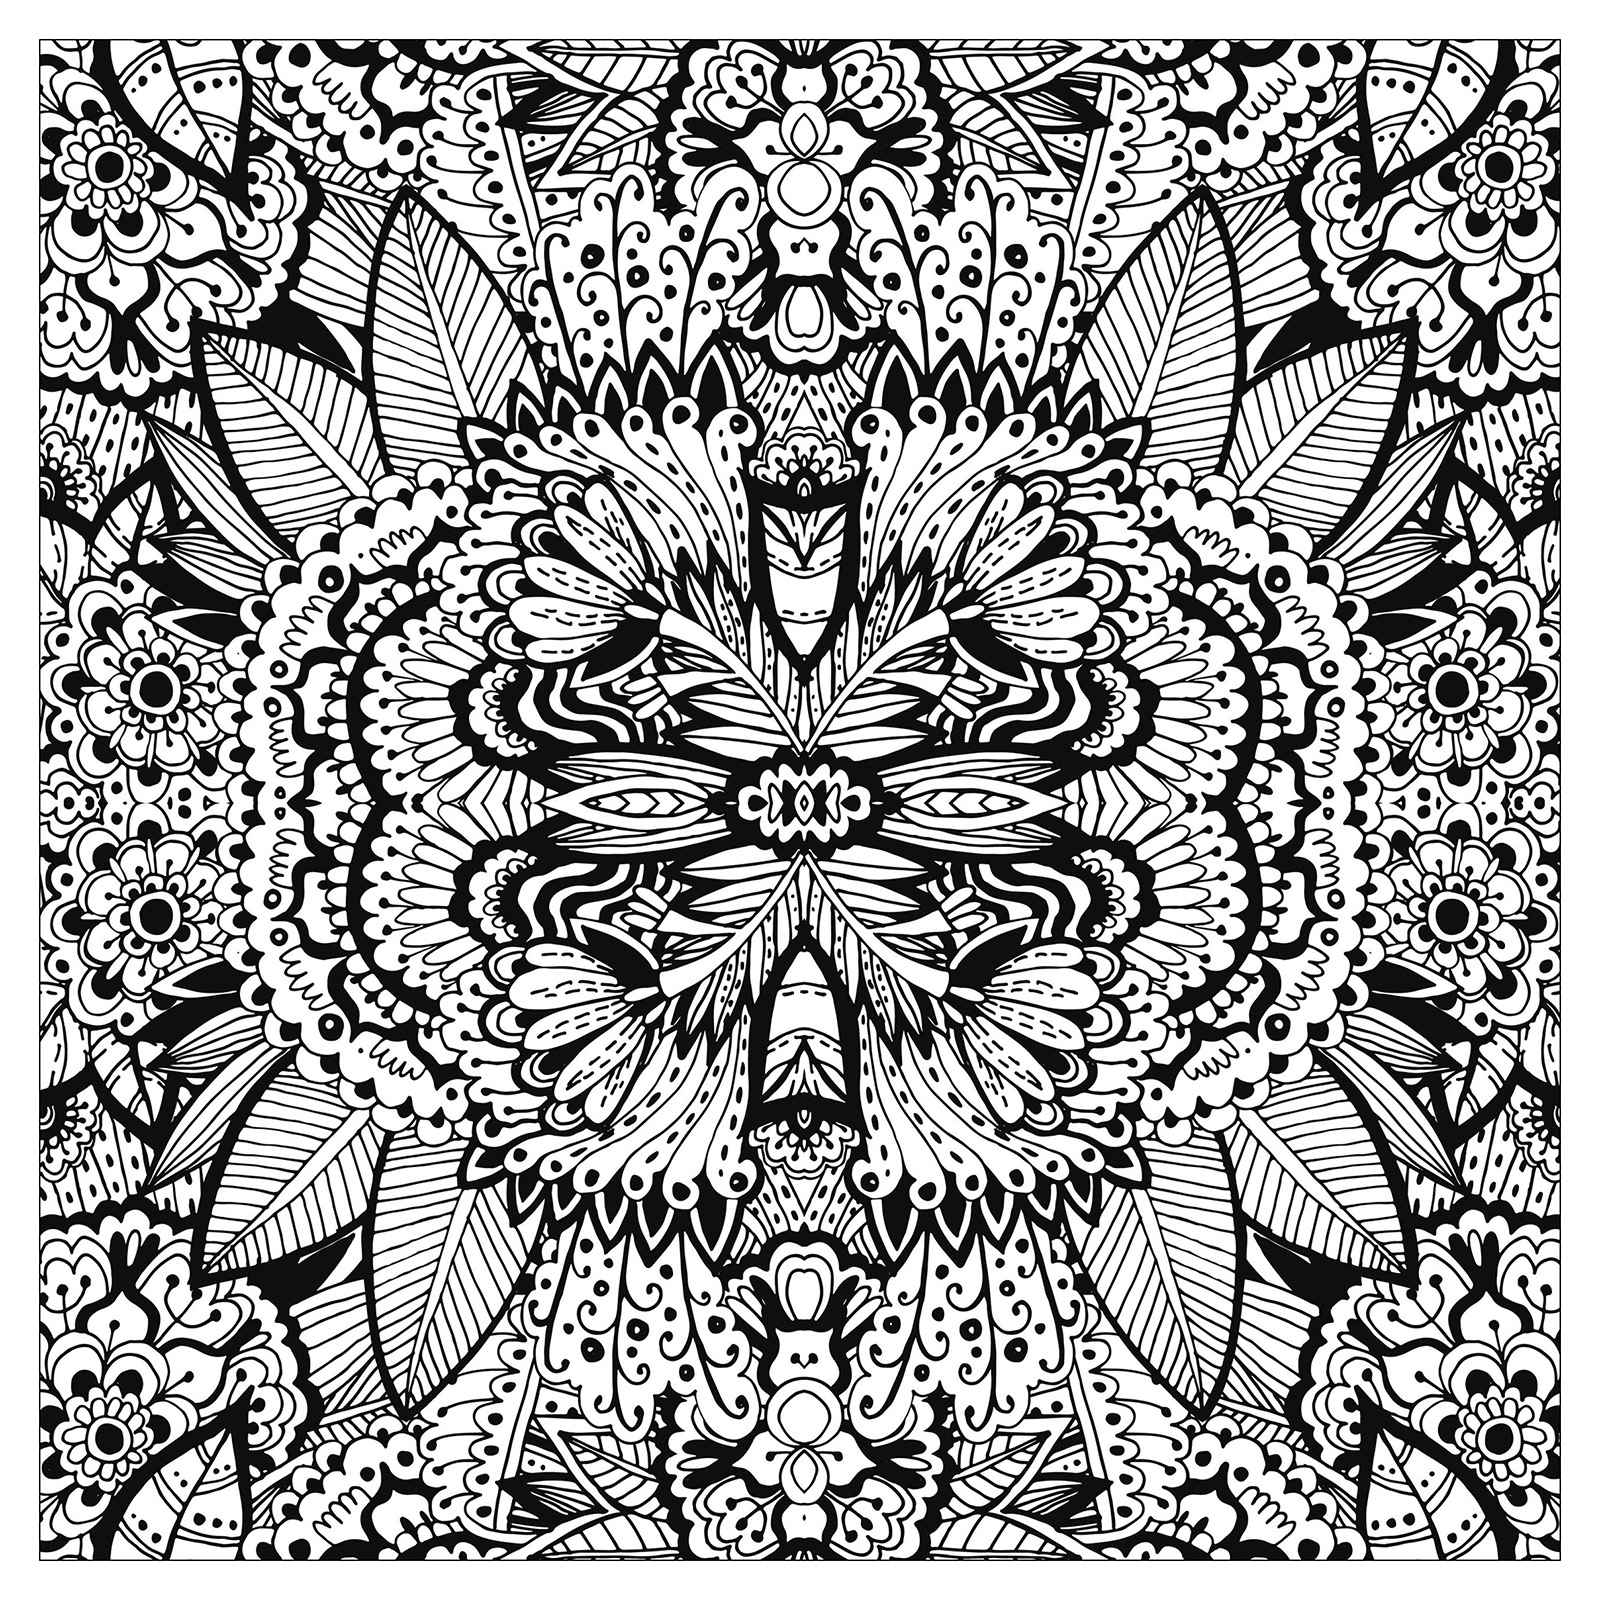 flower adult coloring pages - image=fleurs et ve ation coloring adult plex flower carpet squared by valeriia lelanina 1